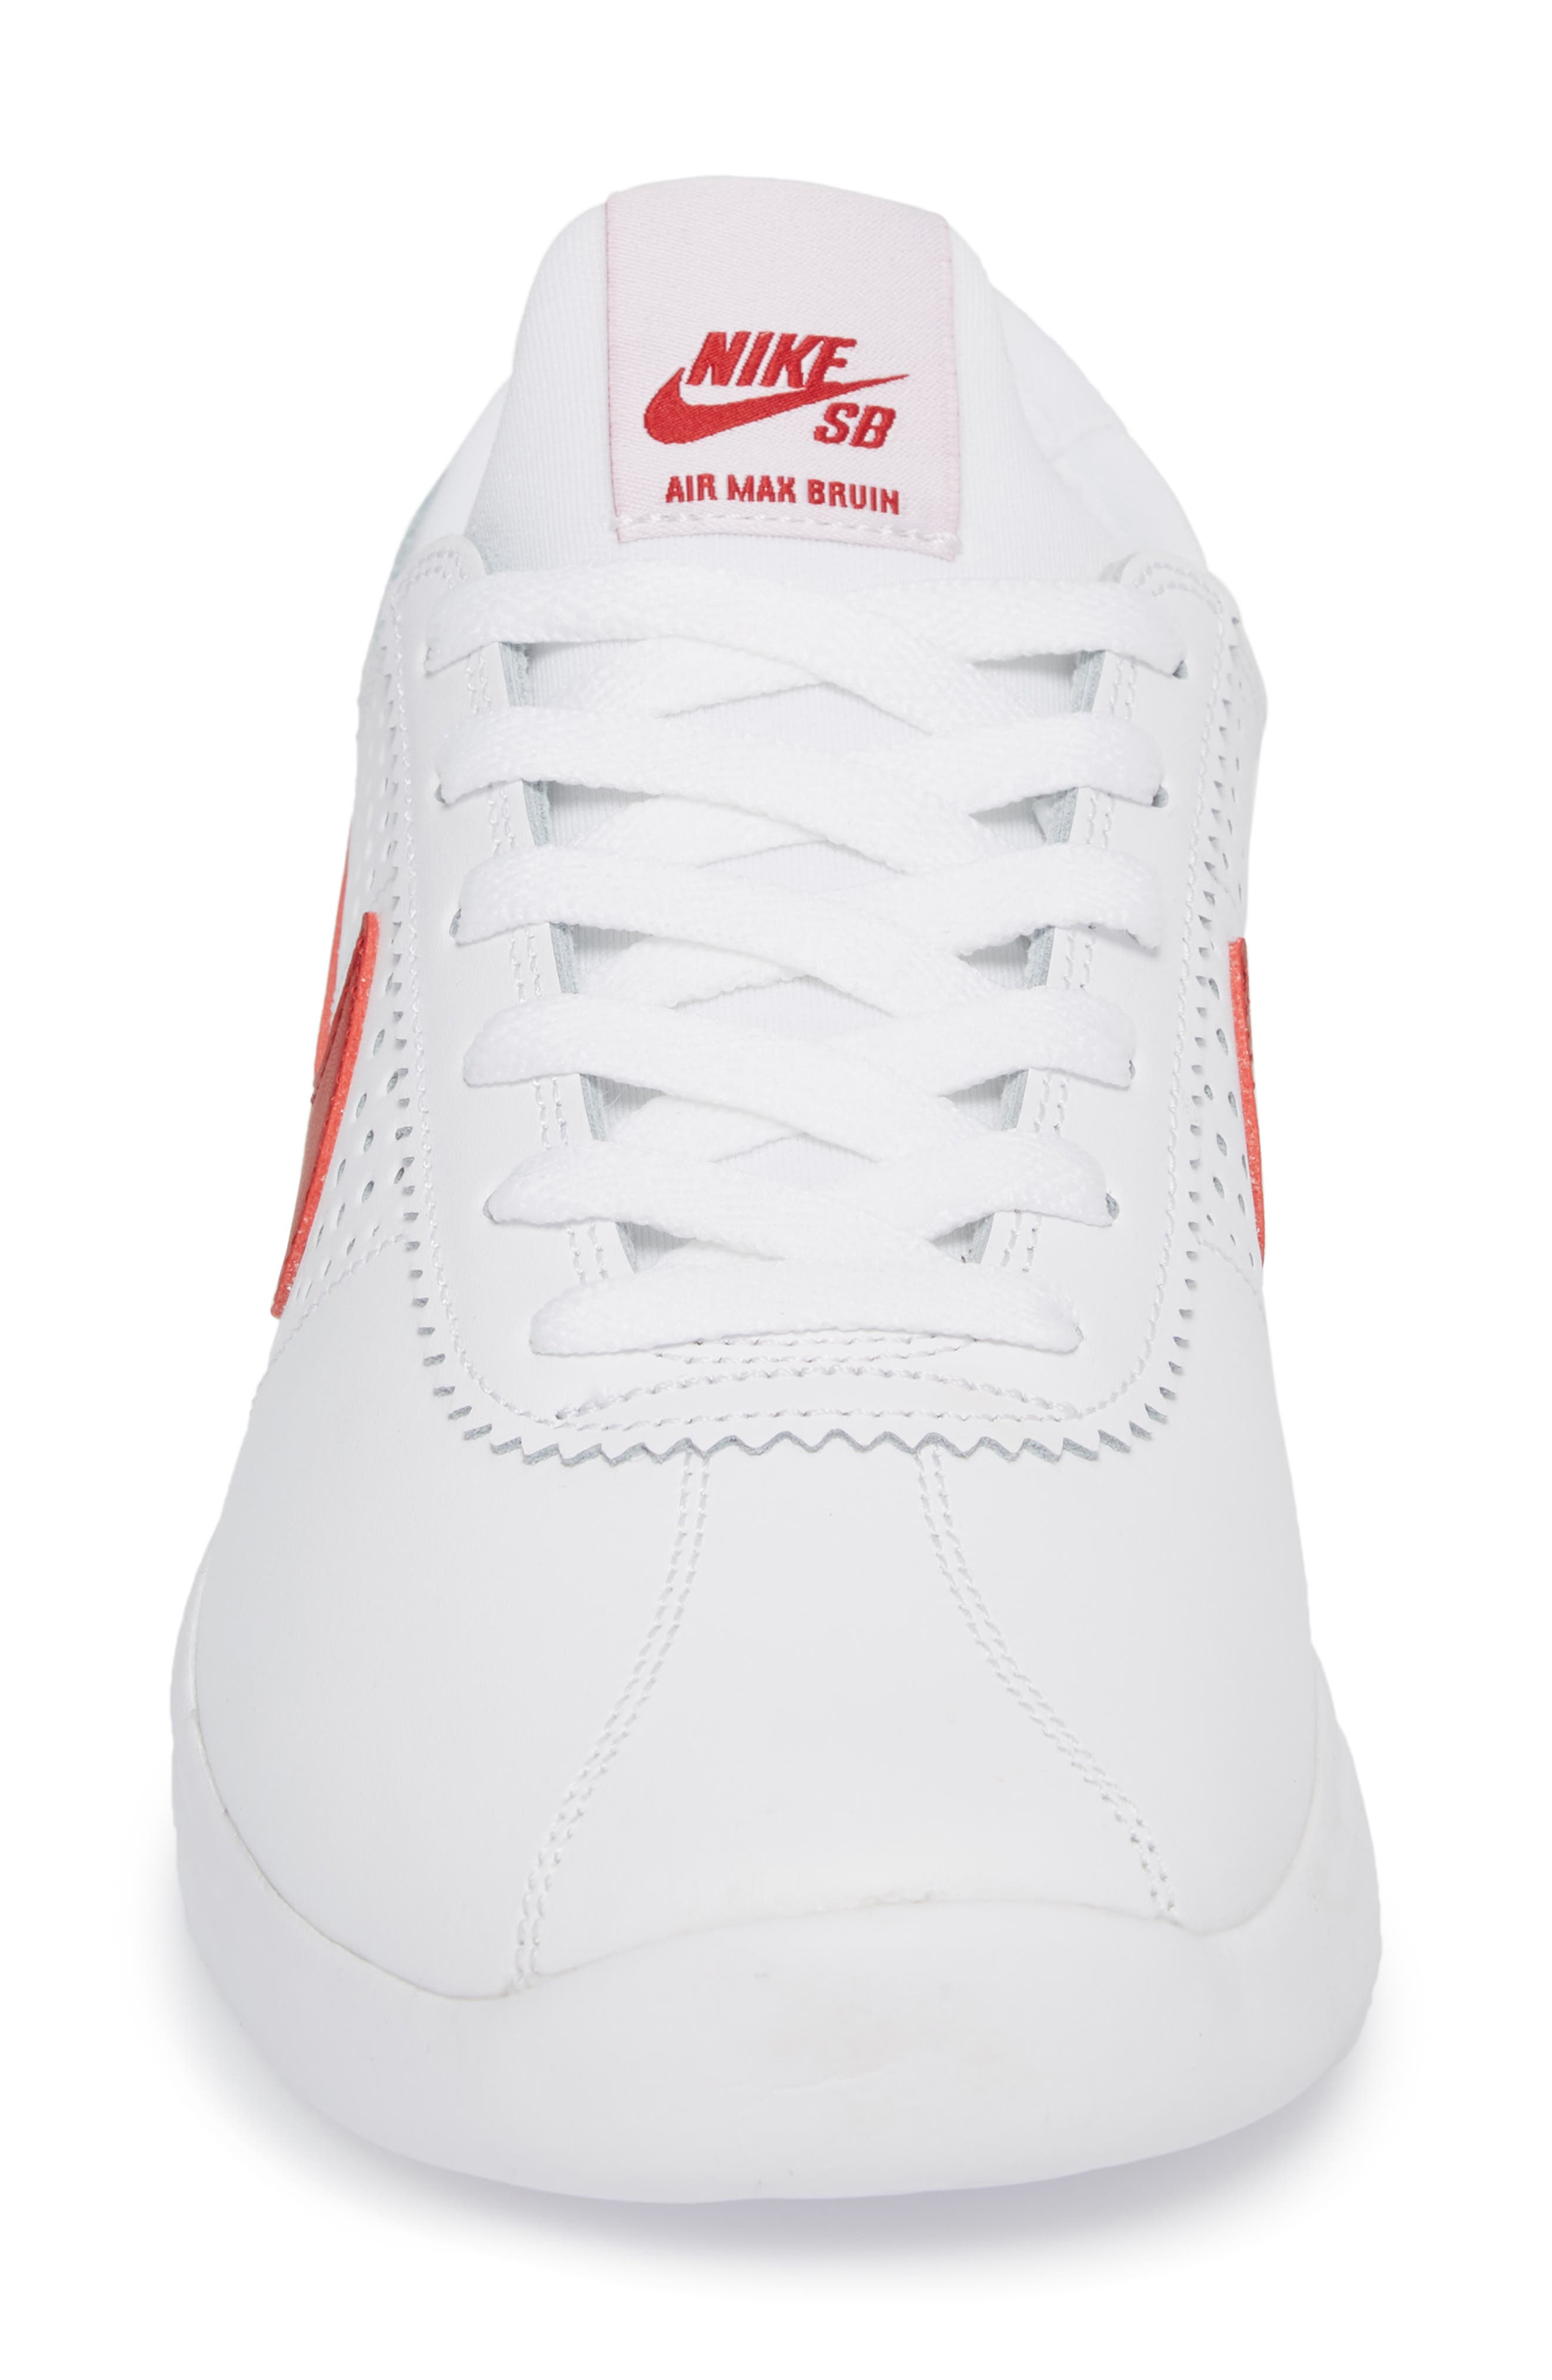 SB Air Max Bruin Vapor Skateboarding Sneaker,                             Alternate thumbnail 4, color,                             100